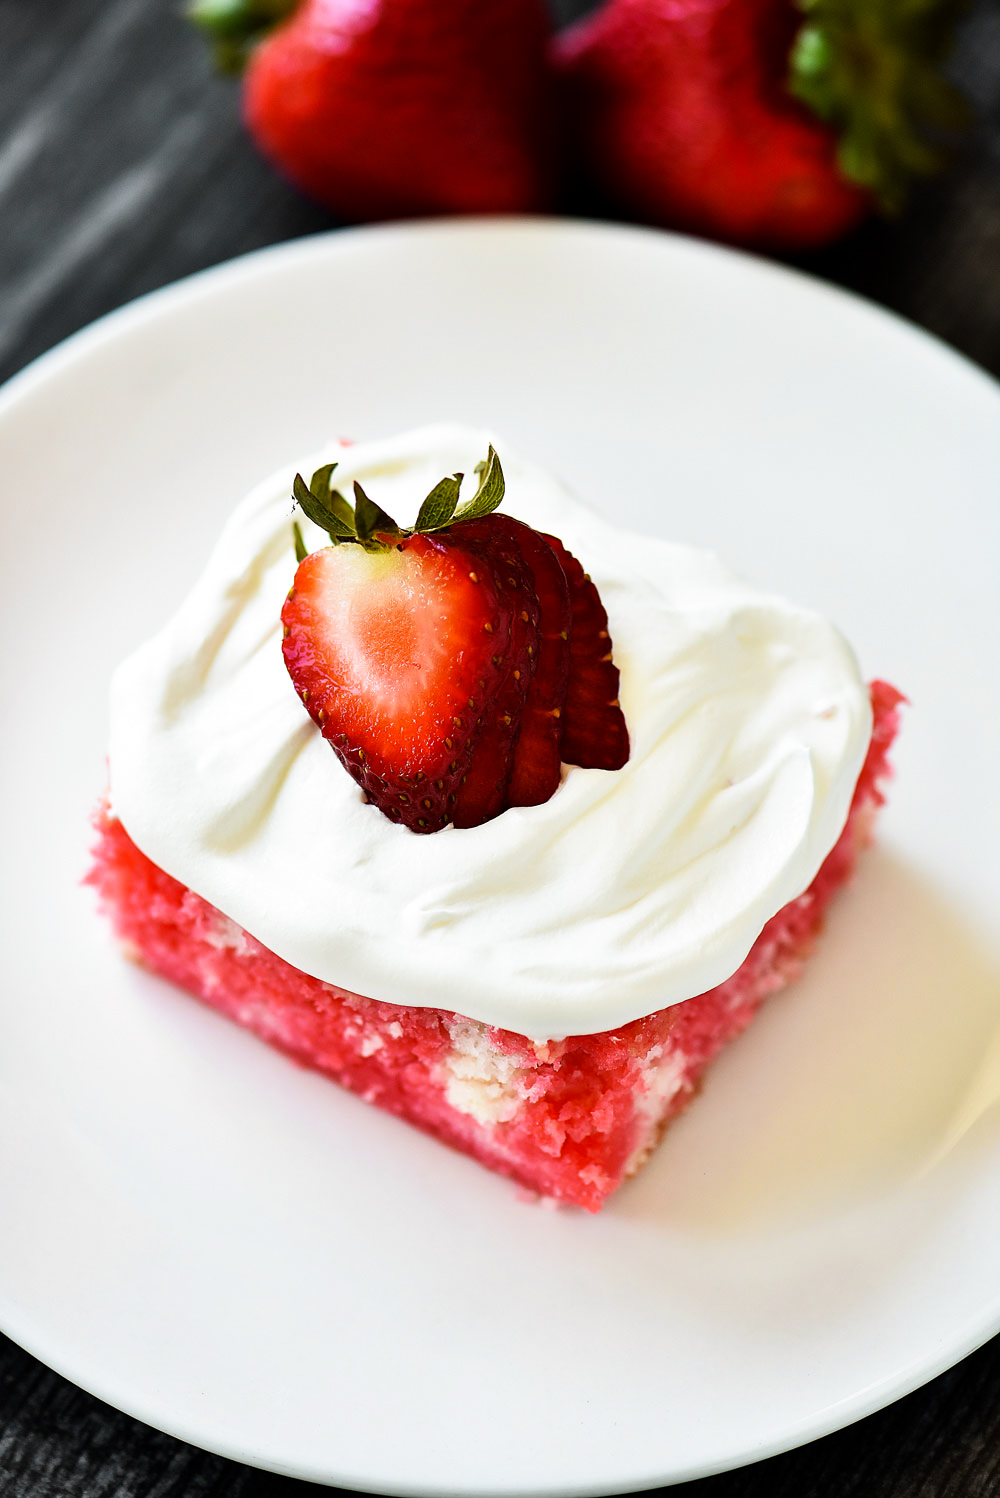 Incredibly light and delicious Strawberry Jello Poke Cake! This white cake is filled with strawberry jello and topped with fresh whipped cream and strawberries.